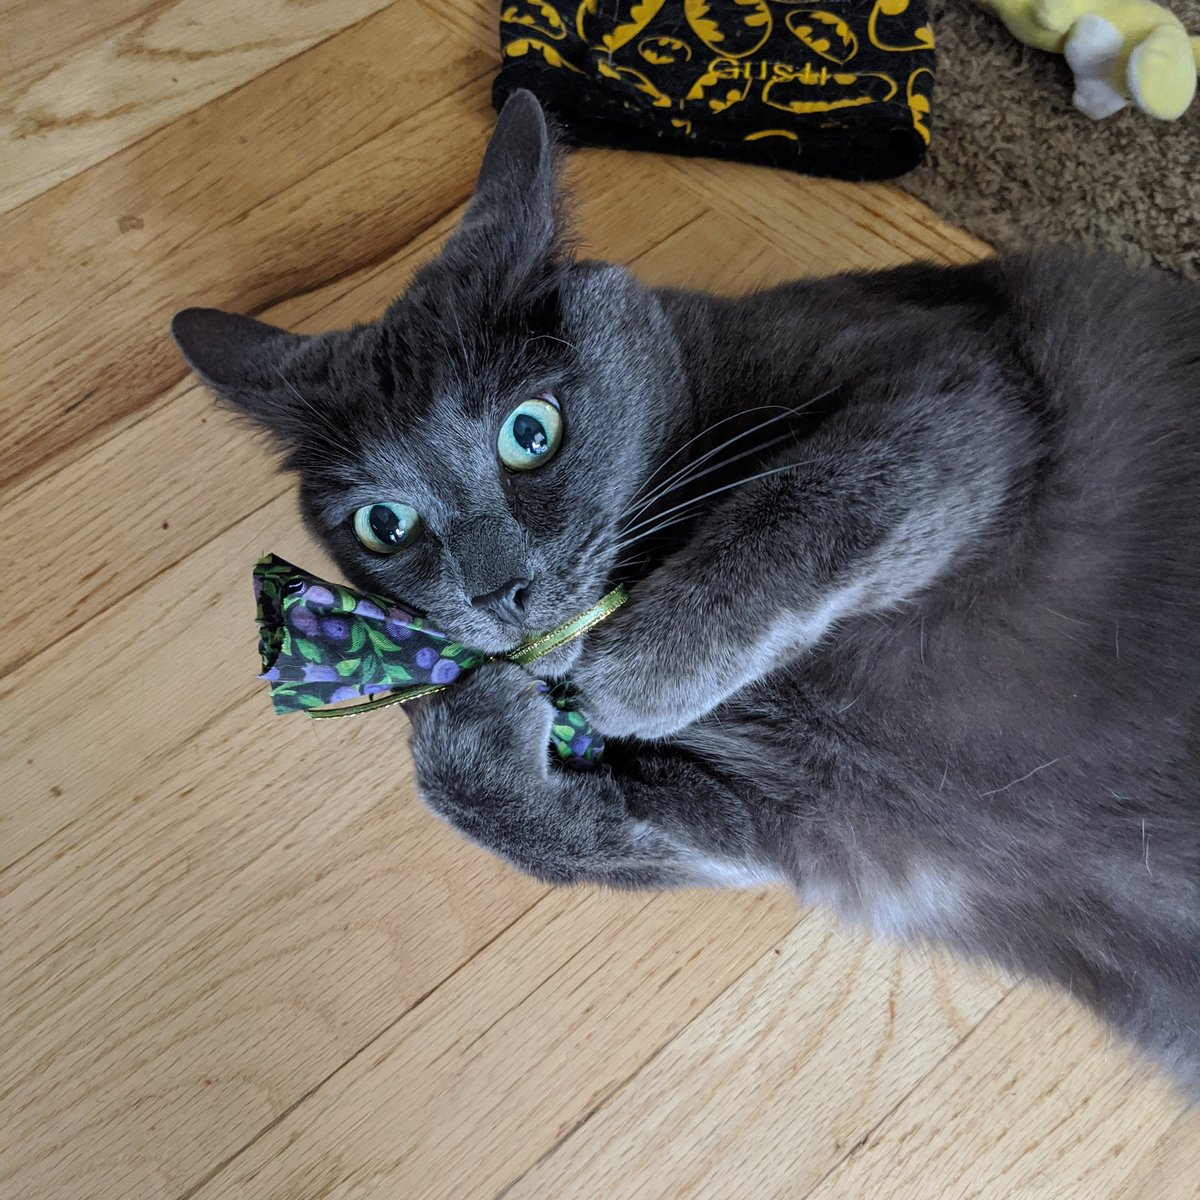 #WhiteHouseCatWatch Short Boris is having some medicinal catnip and watching!